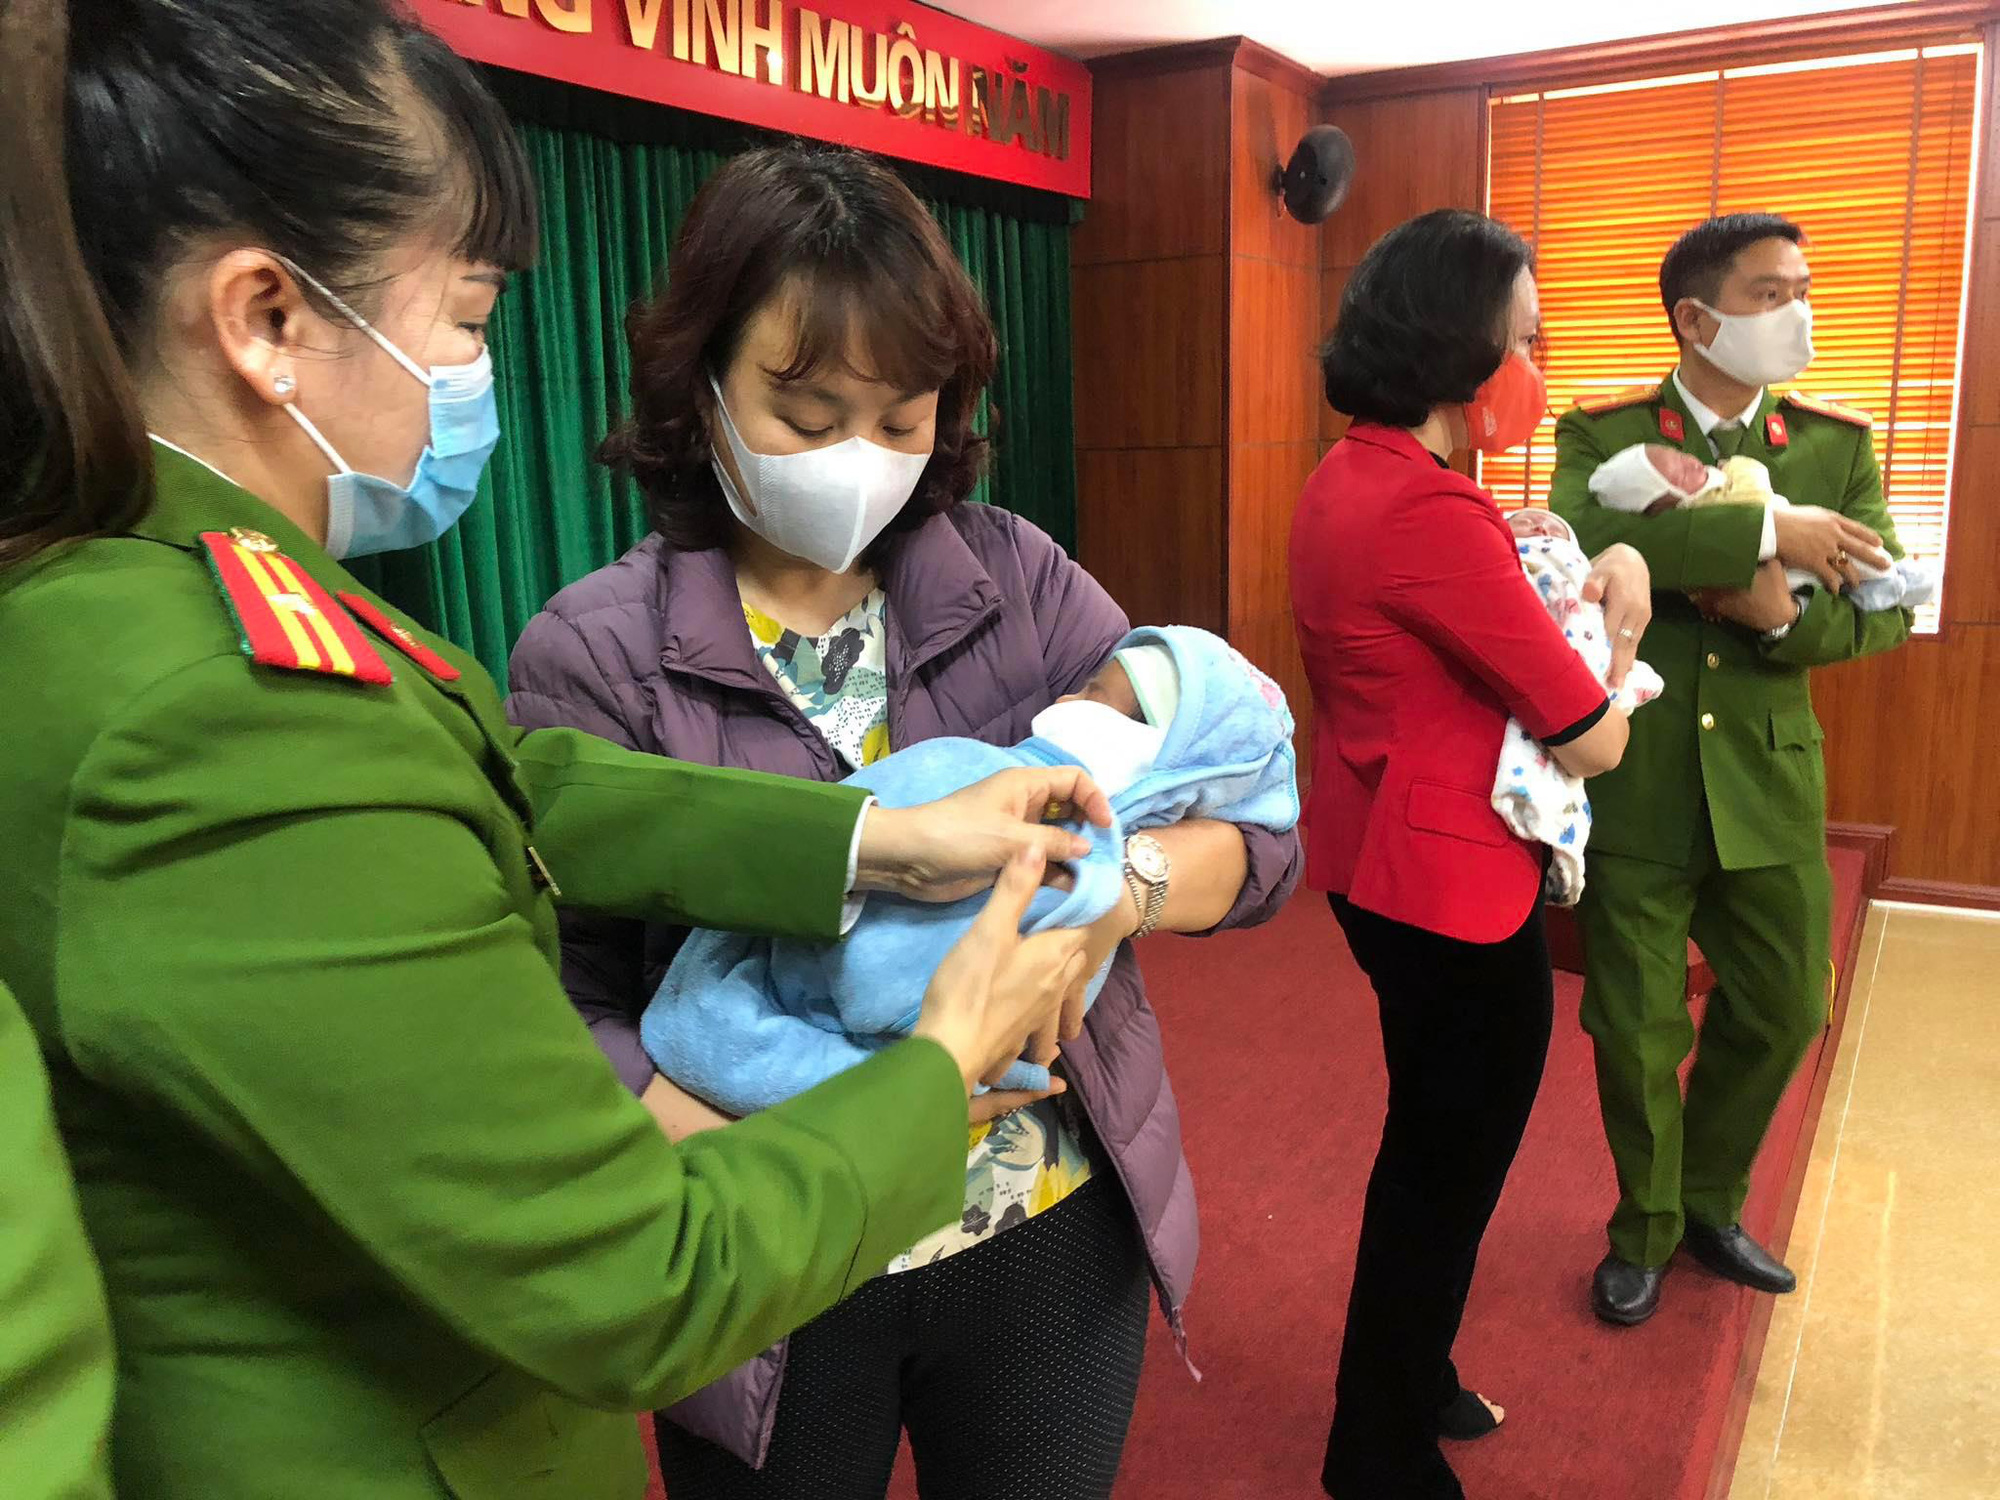 Vietnamese police officers rescue babies who were about to be trafficked to China in this supplied photo.